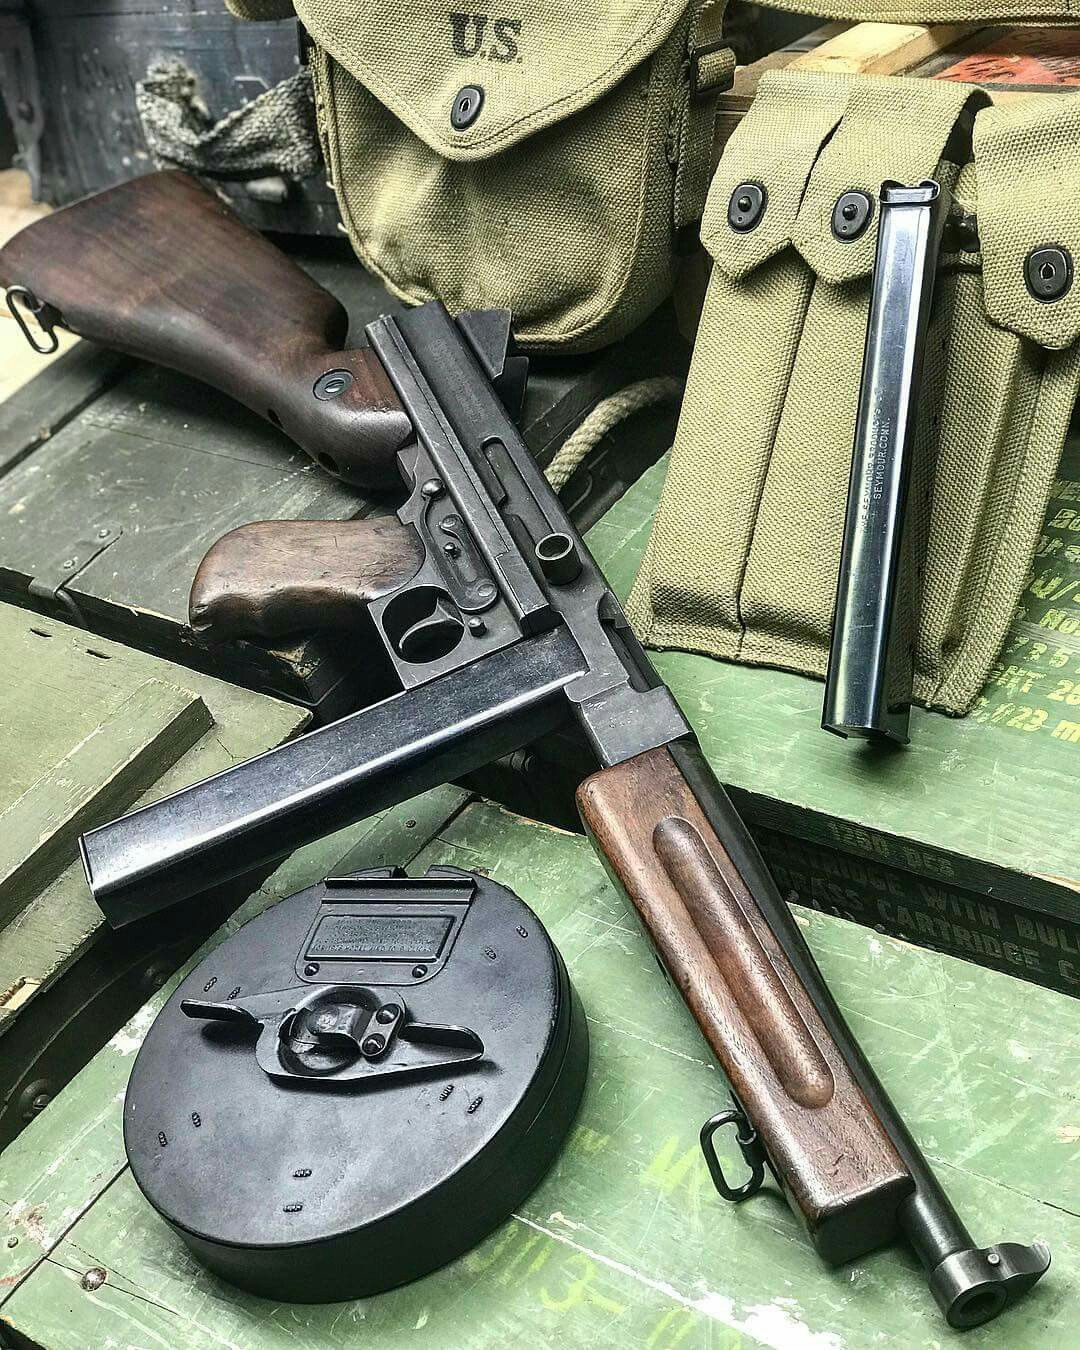 Colt-Thompson M1a1 Submachine Gun,  45 ACP  The WWII Model of the